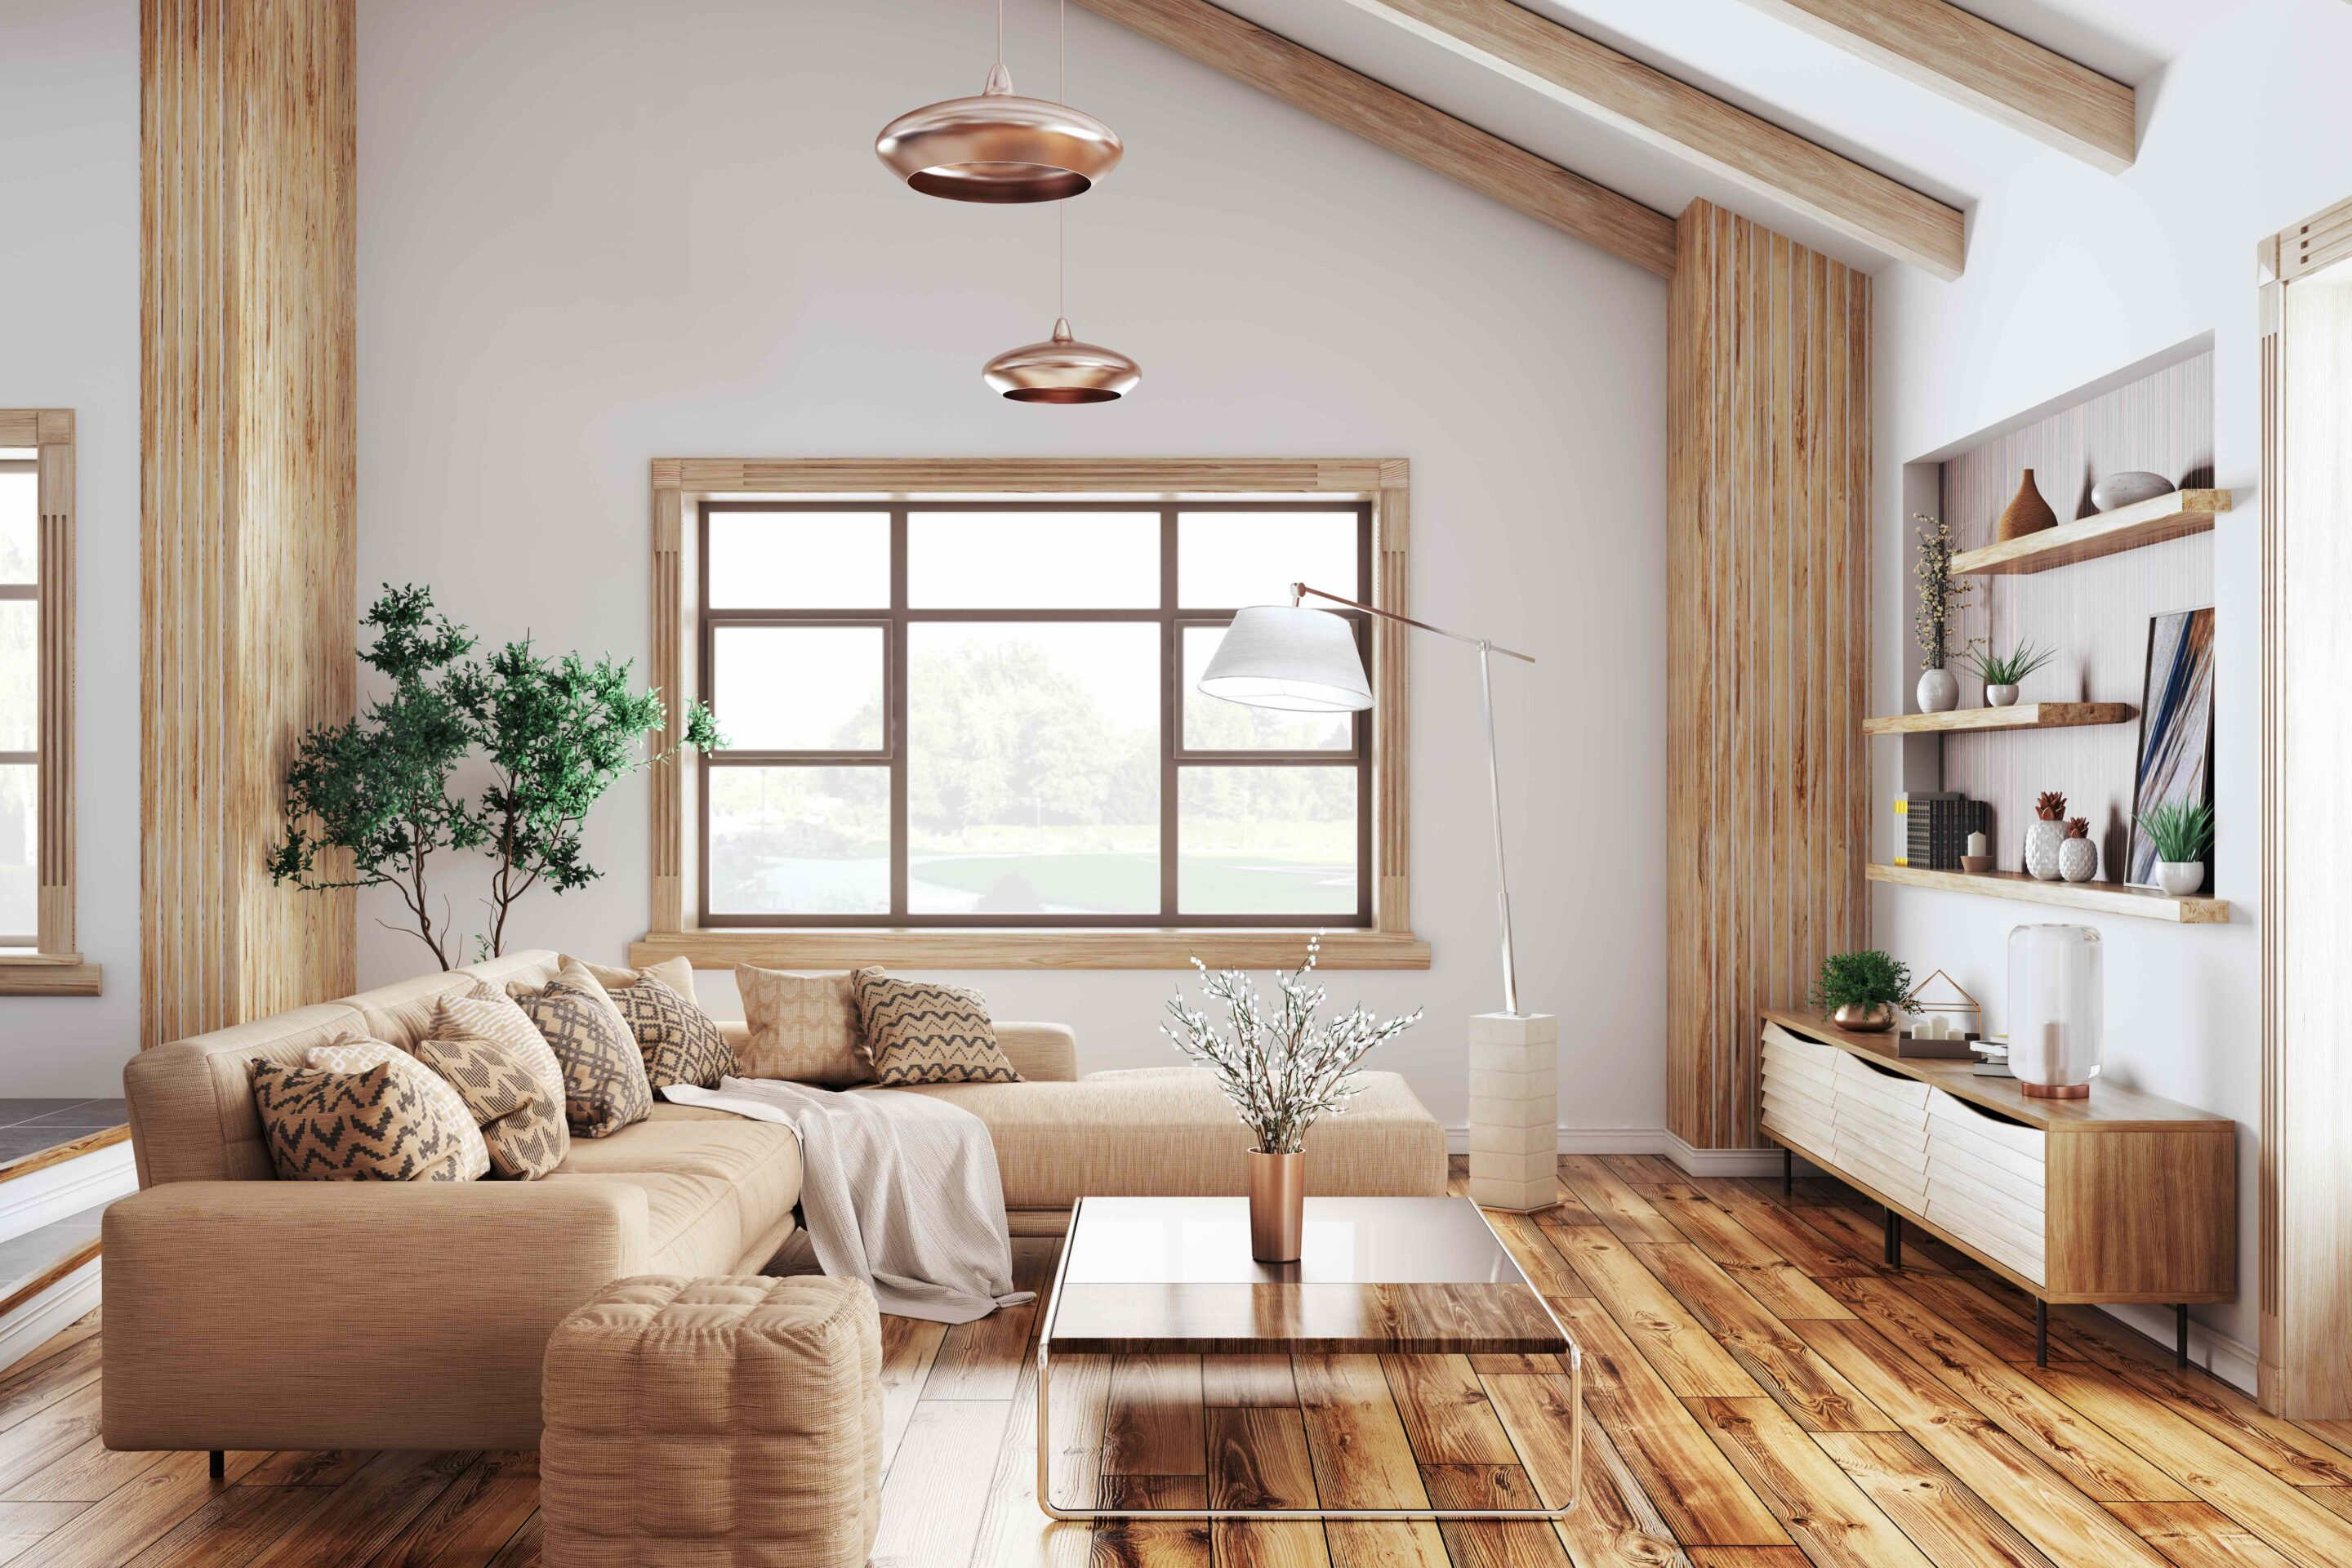 5 Reasons to Build an Eco-Friendly Home